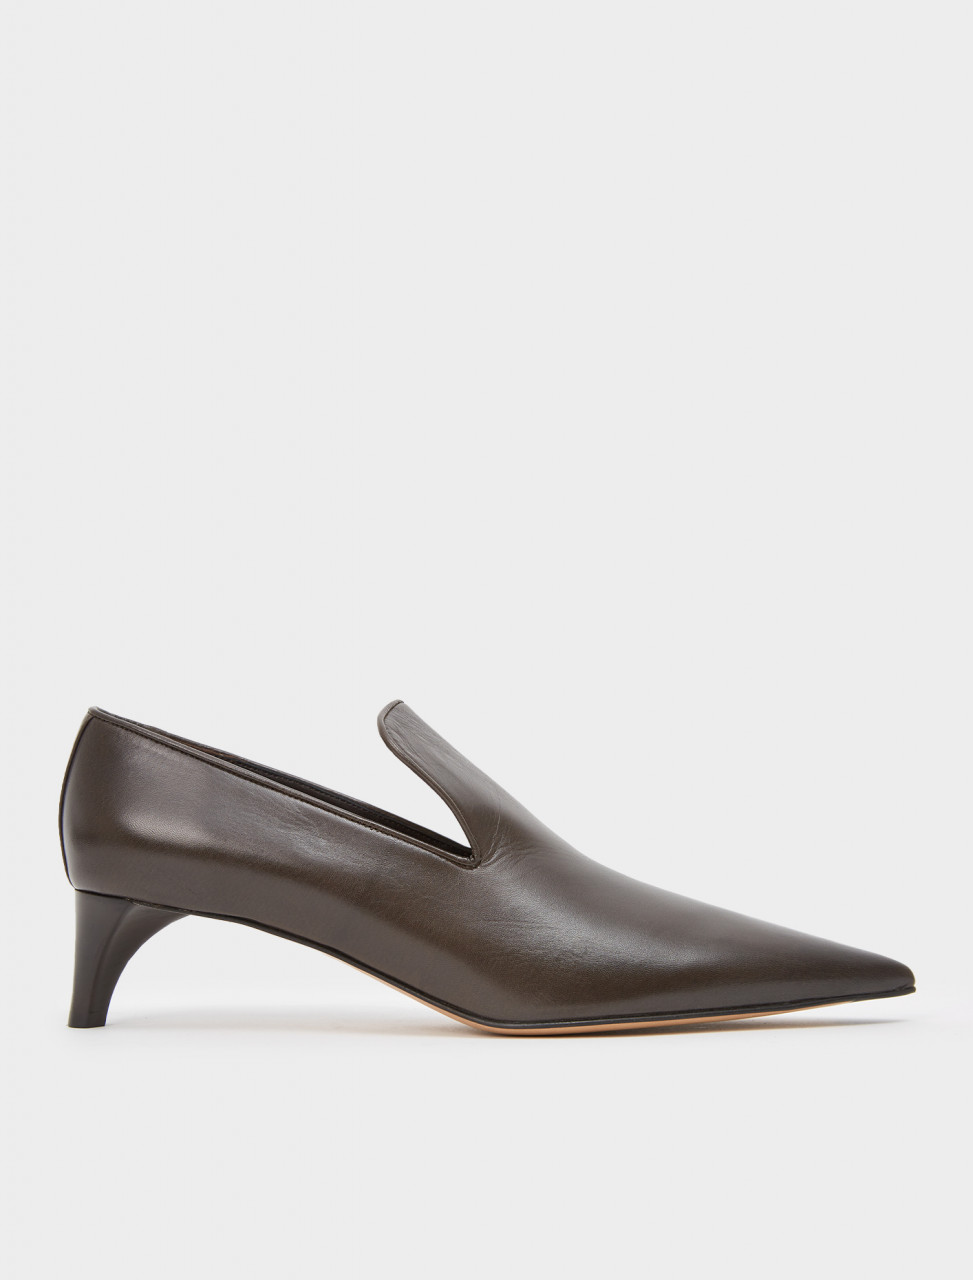 130-JS35125A-12015-201 JIL SANDER LEATHER PUMPS DARK BROWN